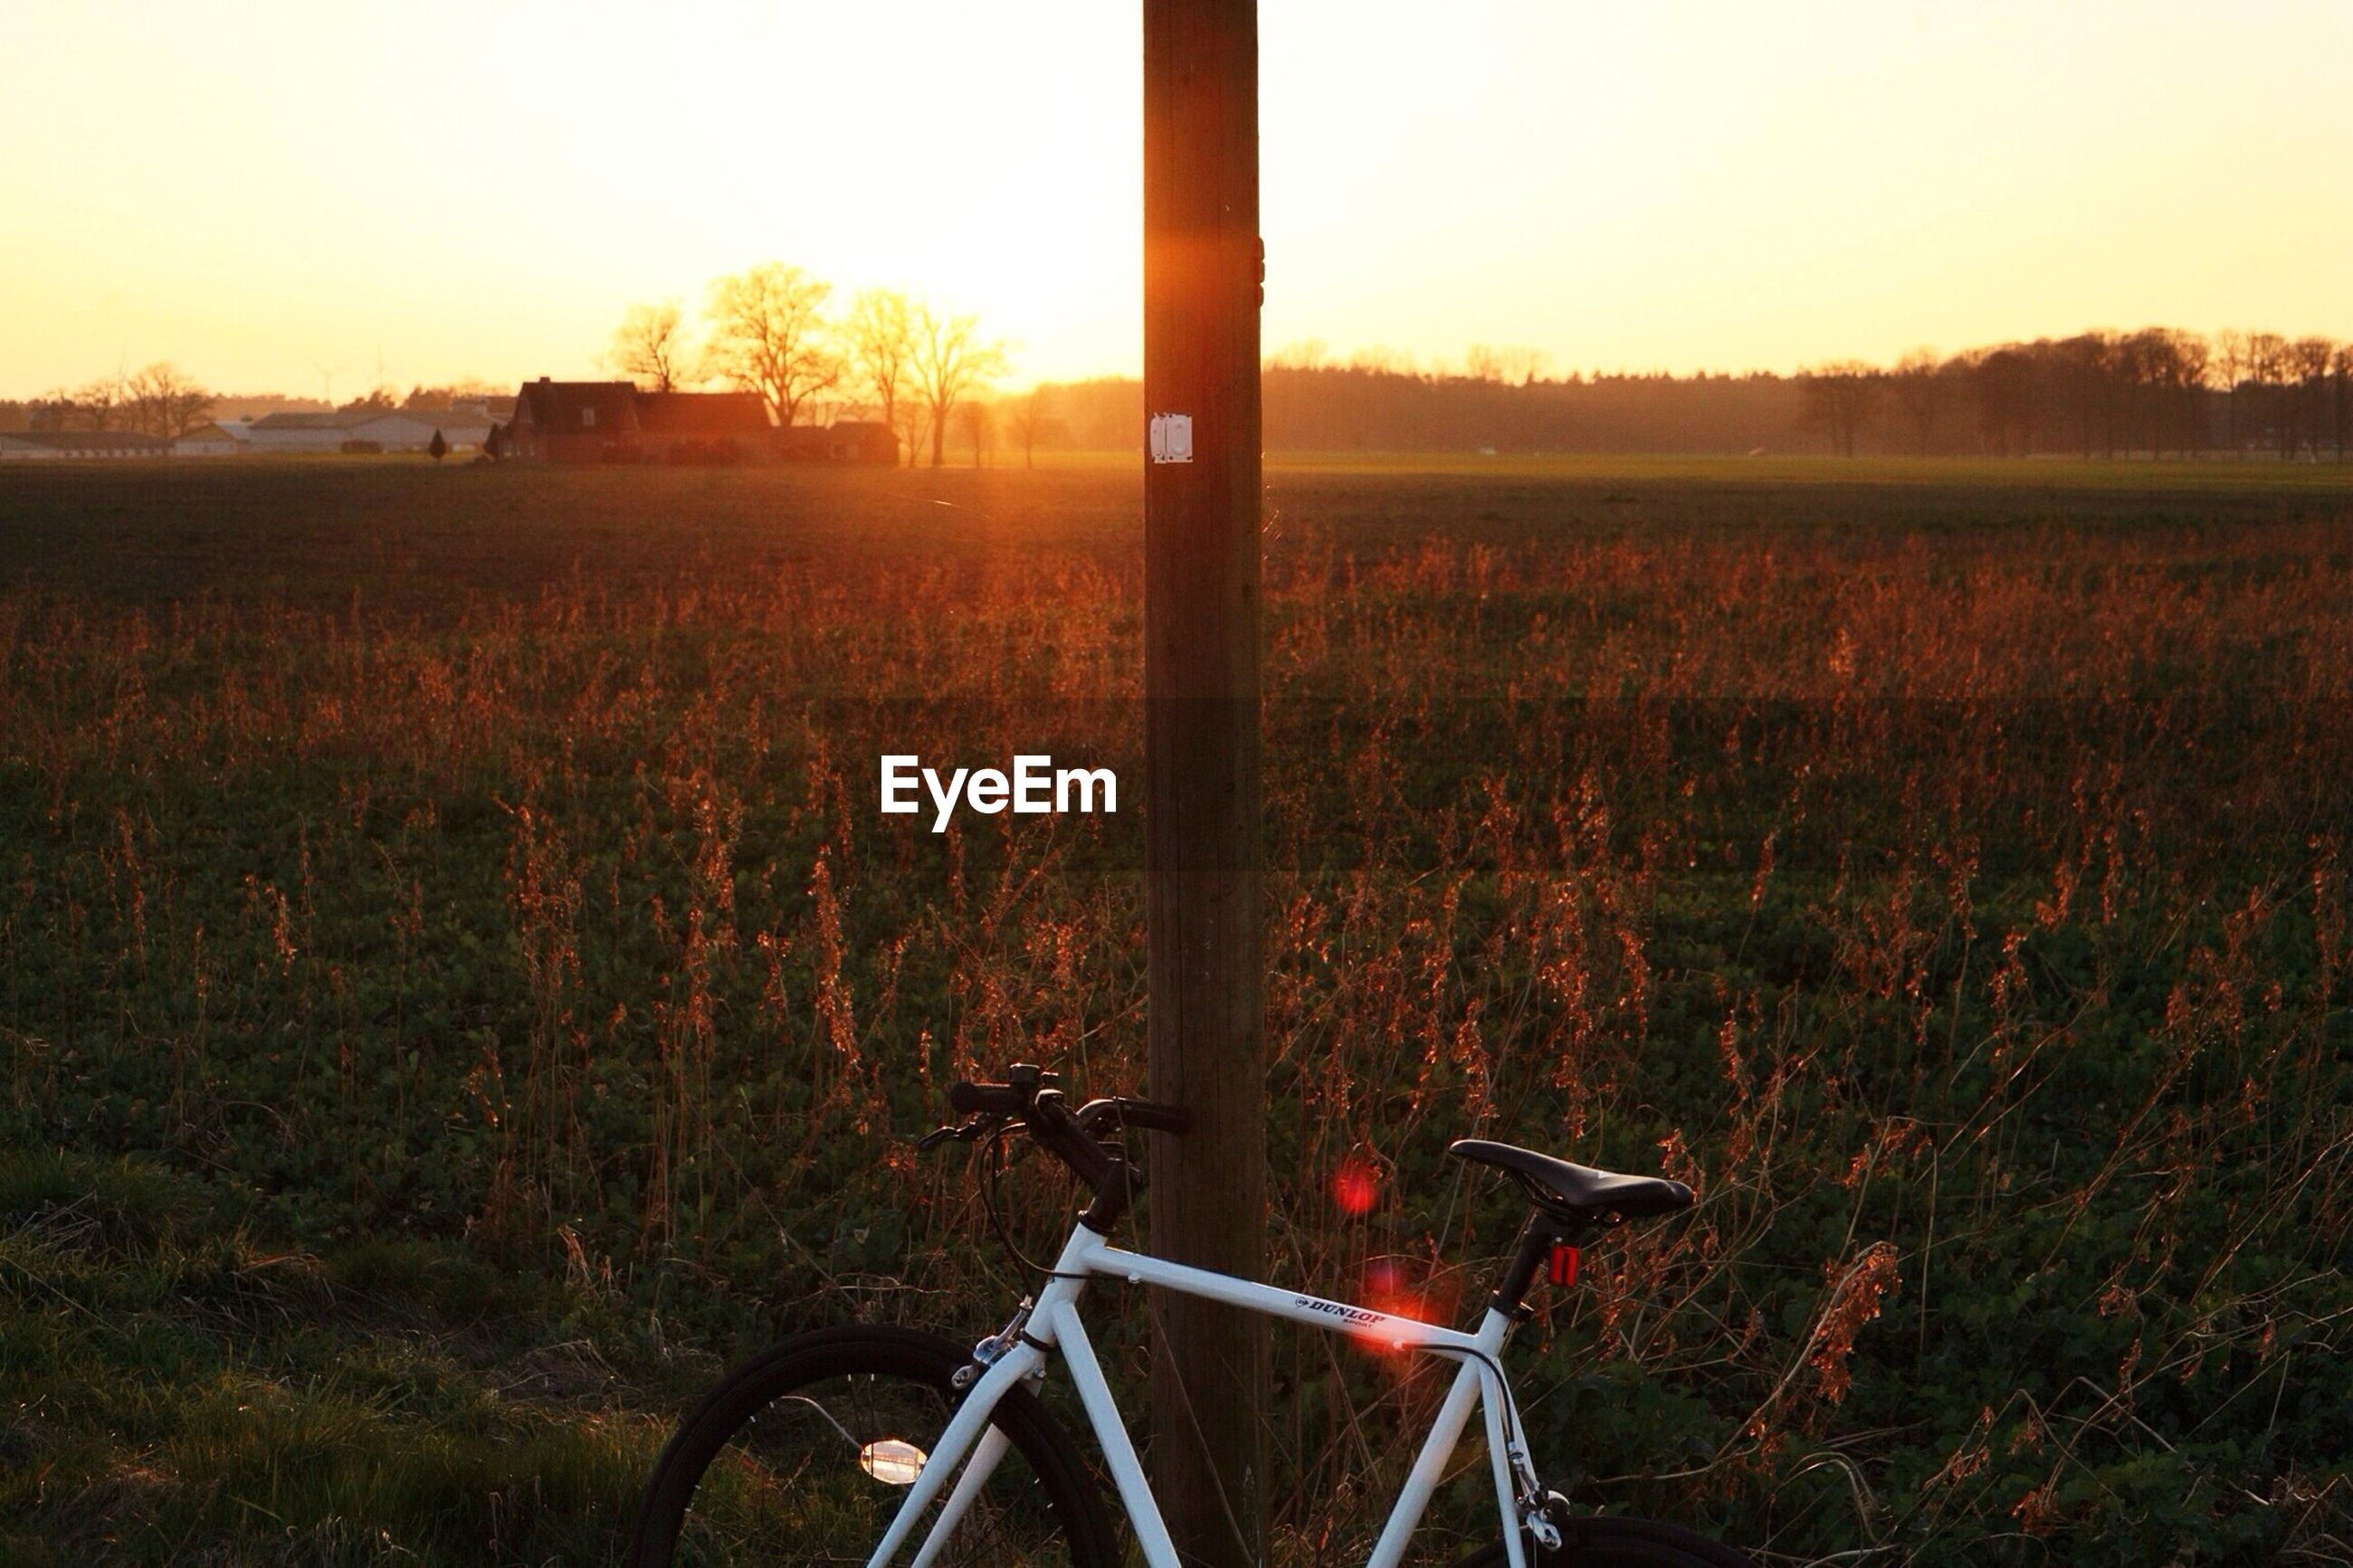 sunset, grass, field, tree, tranquility, landscape, growth, clear sky, nature, orange color, bicycle, transportation, tranquil scene, plant, scenics, mode of transport, sky, sunlight, beauty in nature, land vehicle